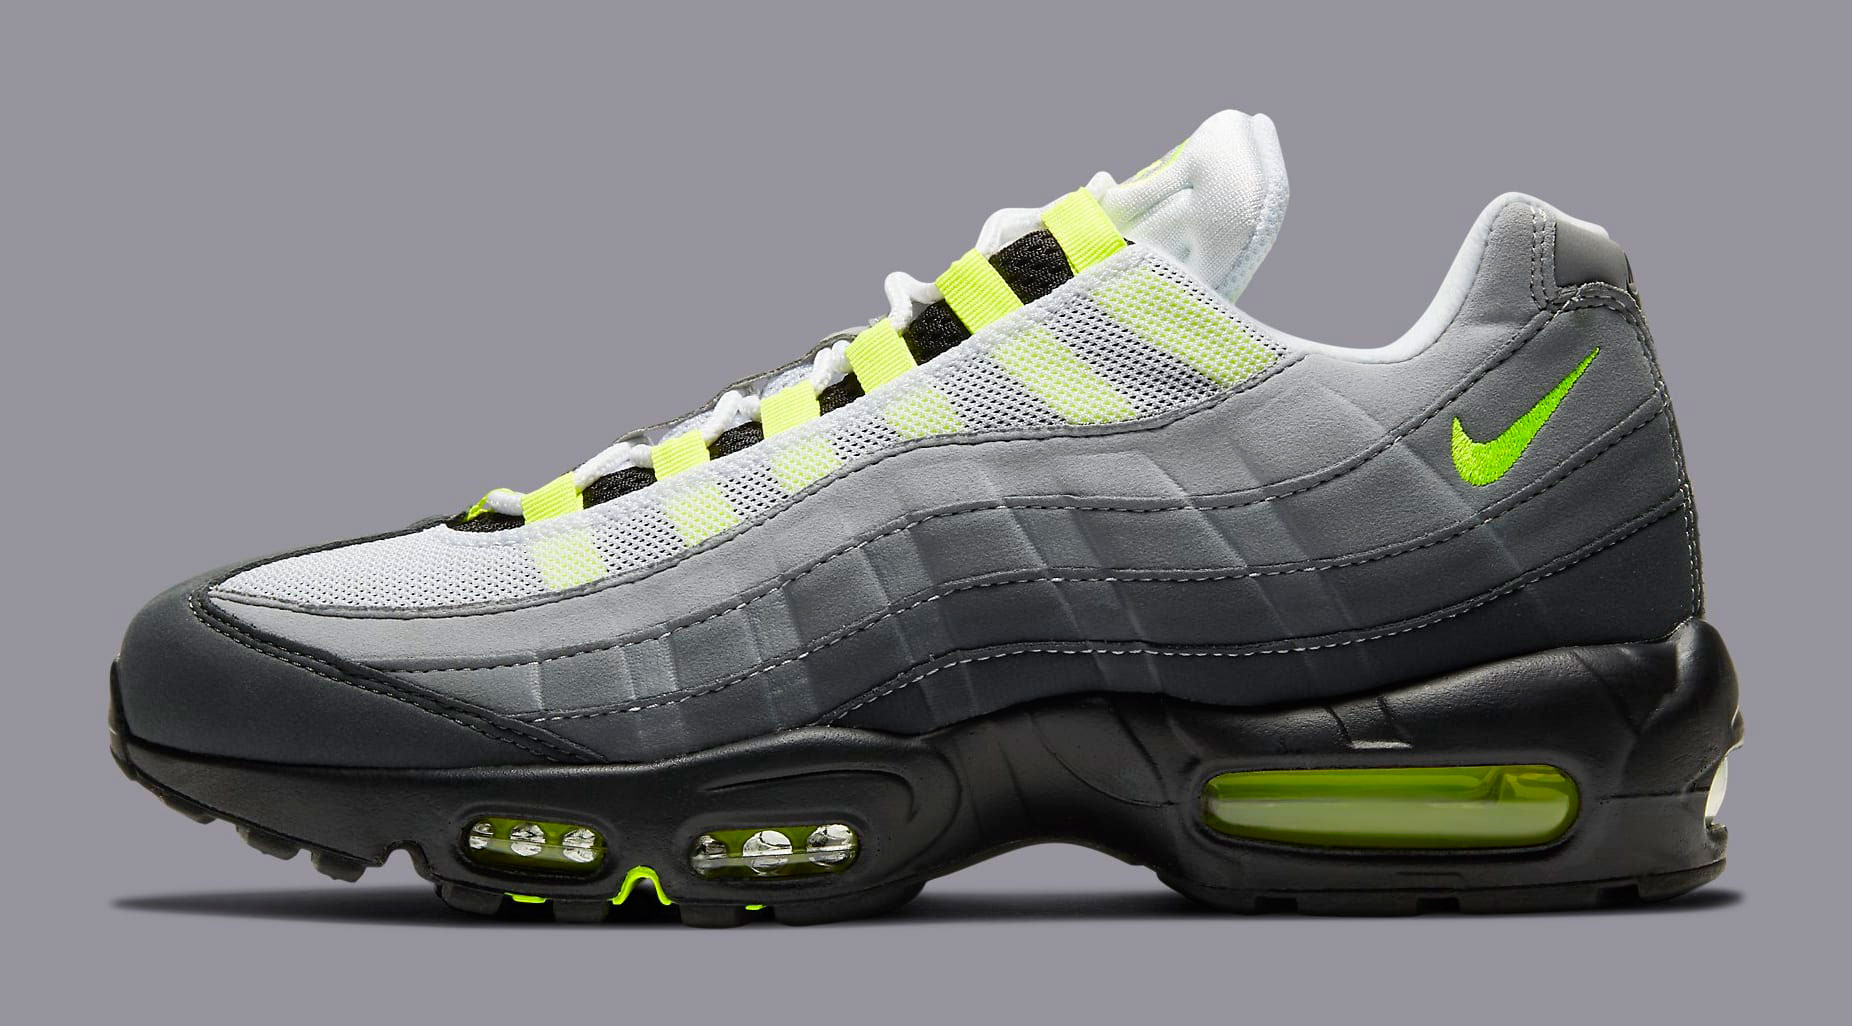 nike-air-max-95-neon-og-2020-sneaker-match-outfits